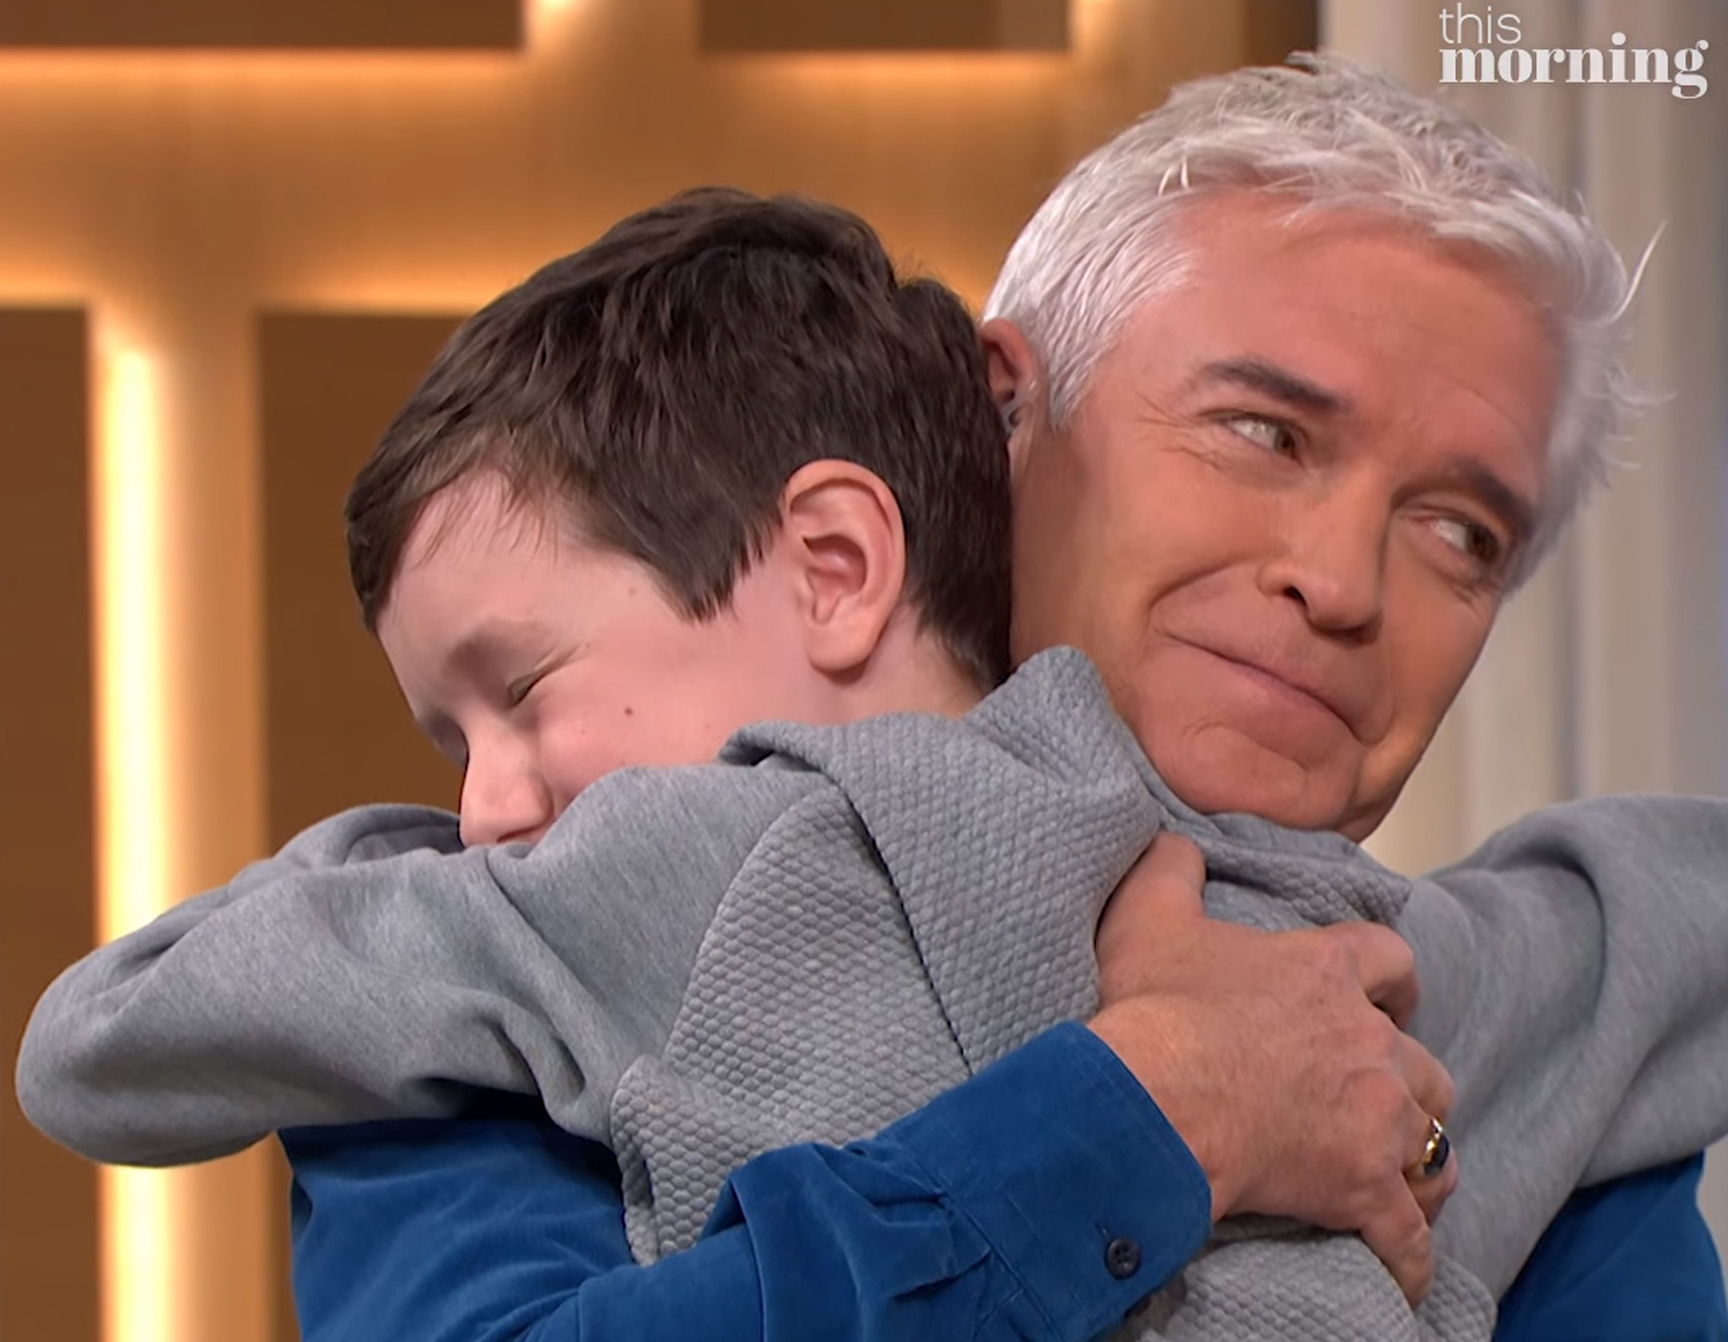 Micjael Glaister hugging Philip Schofoeld on This Morning.